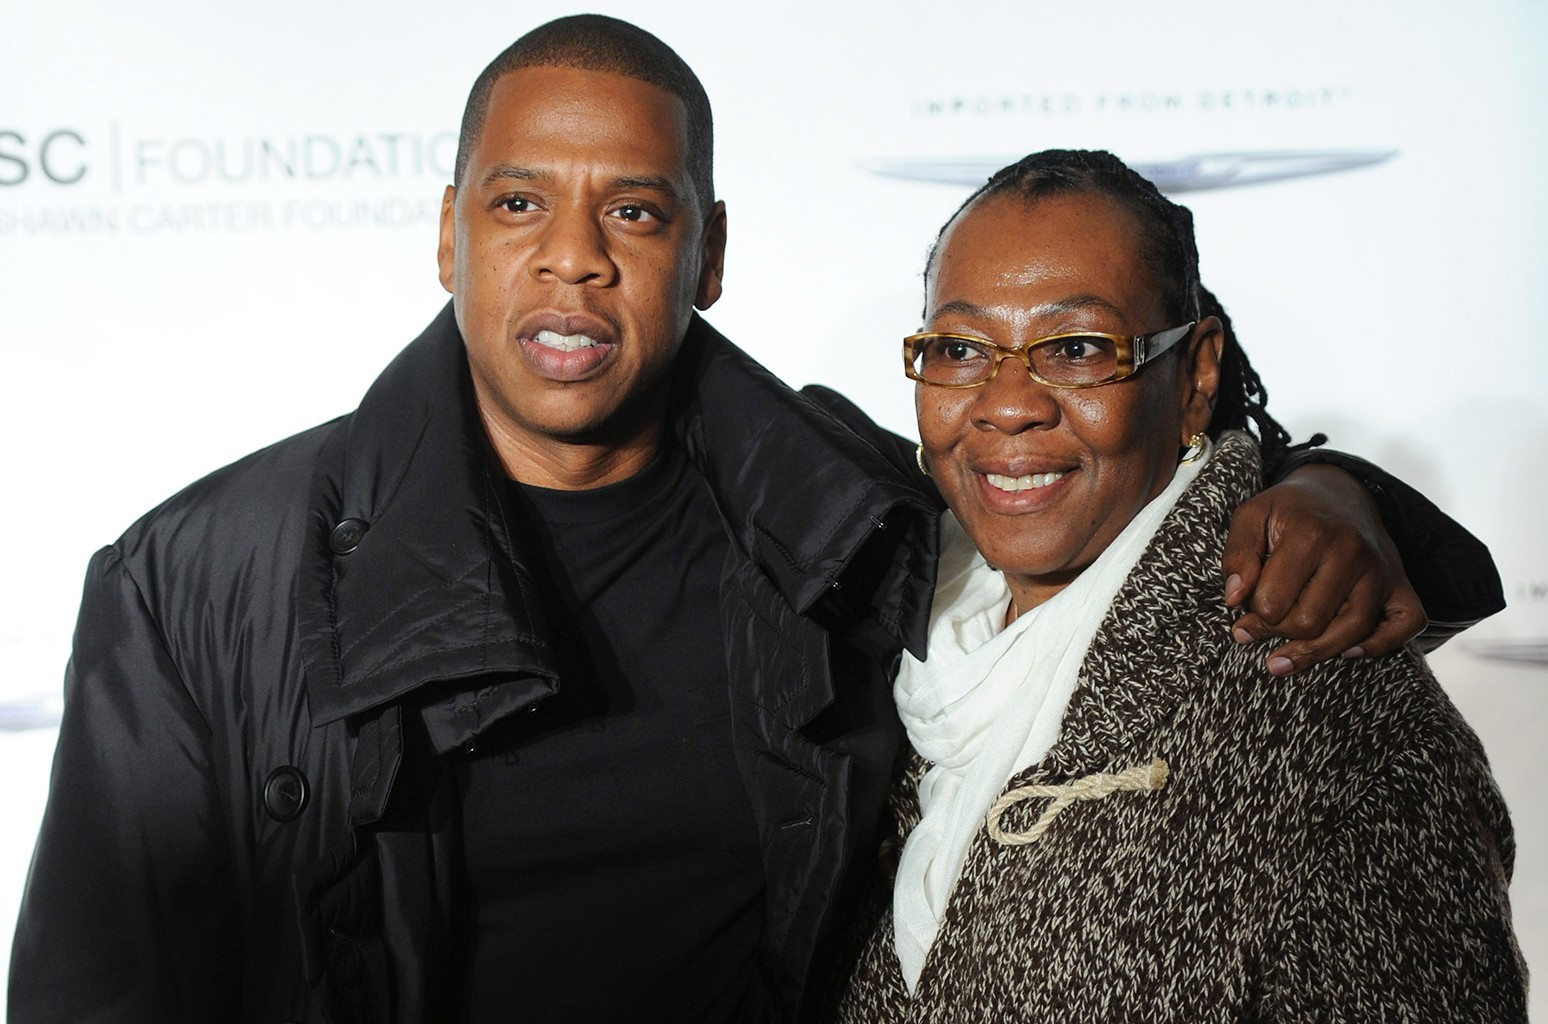 """Jay Z poses with his mother, Gloria Carter during an evening of """"Making The Ordinary Extraordinary"""" hosted by The Shawn Carter Foundation at Pier 54 on Sept. 29, 2011 in New York City."""